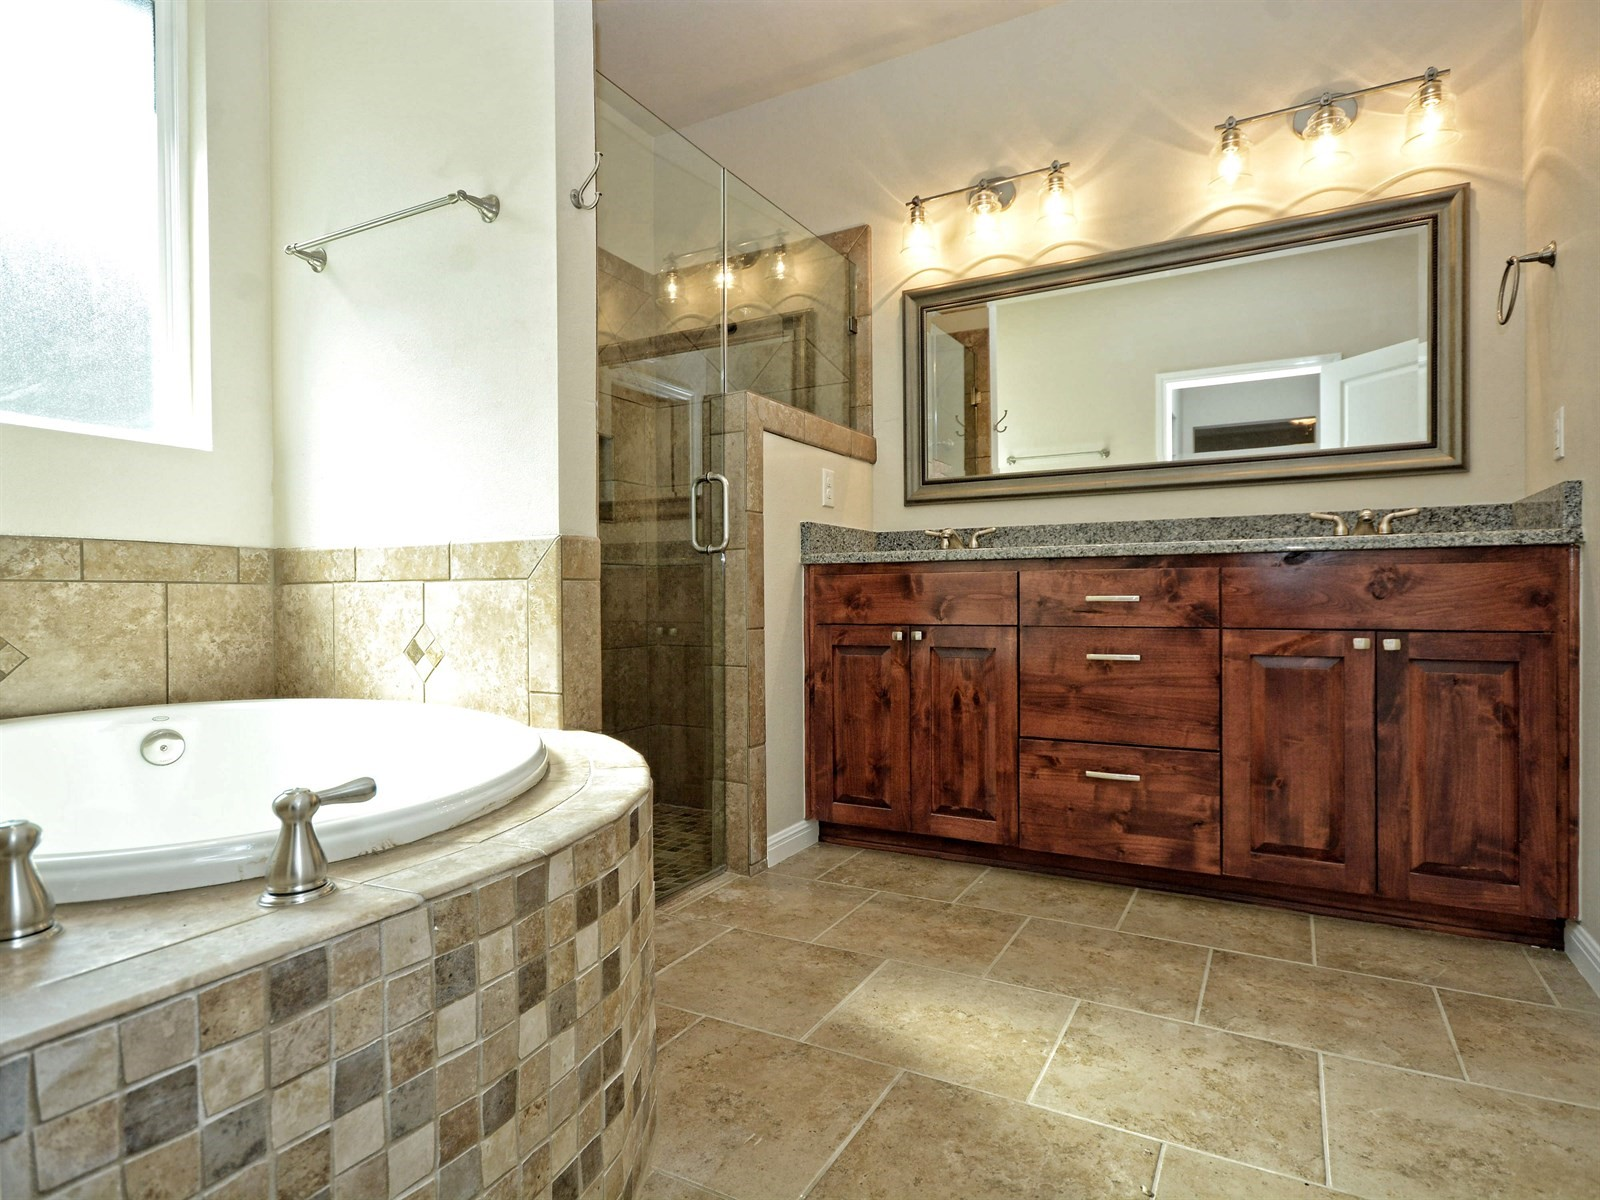 022_Master Bathroom.jpg